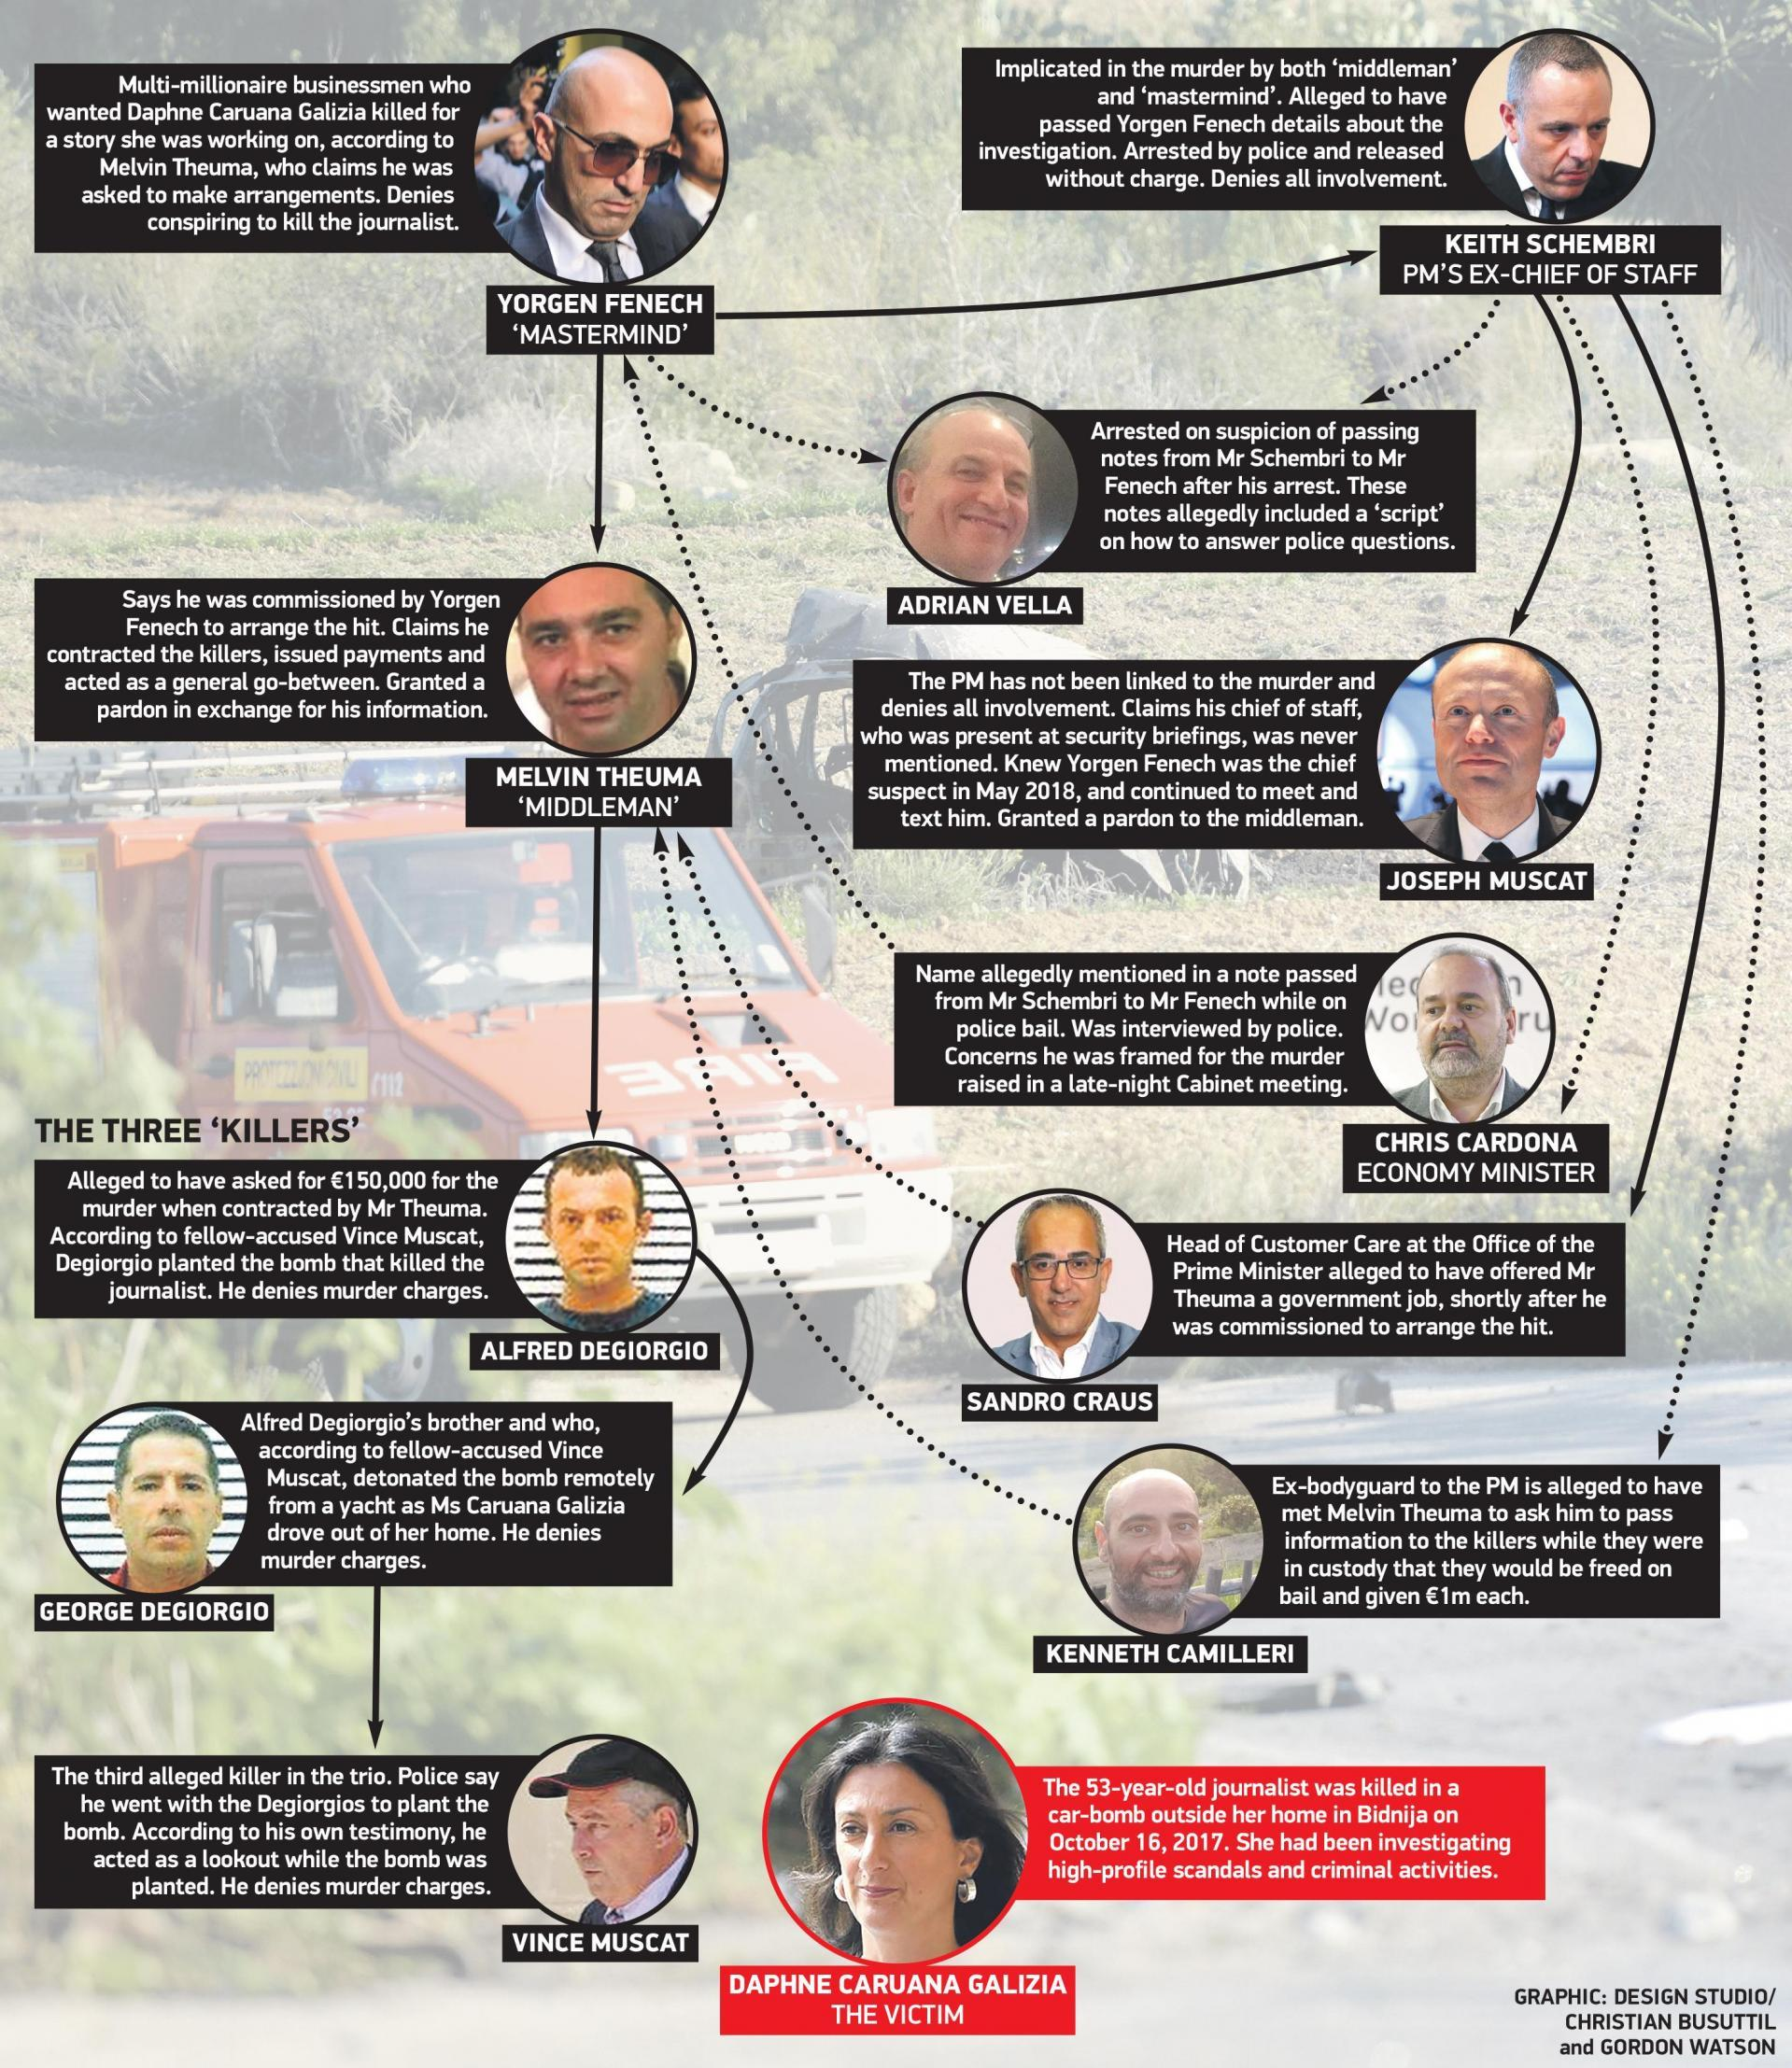 A graphic showing some of the names mentioned in connection with the murder of Daphne Caruana Galizia.